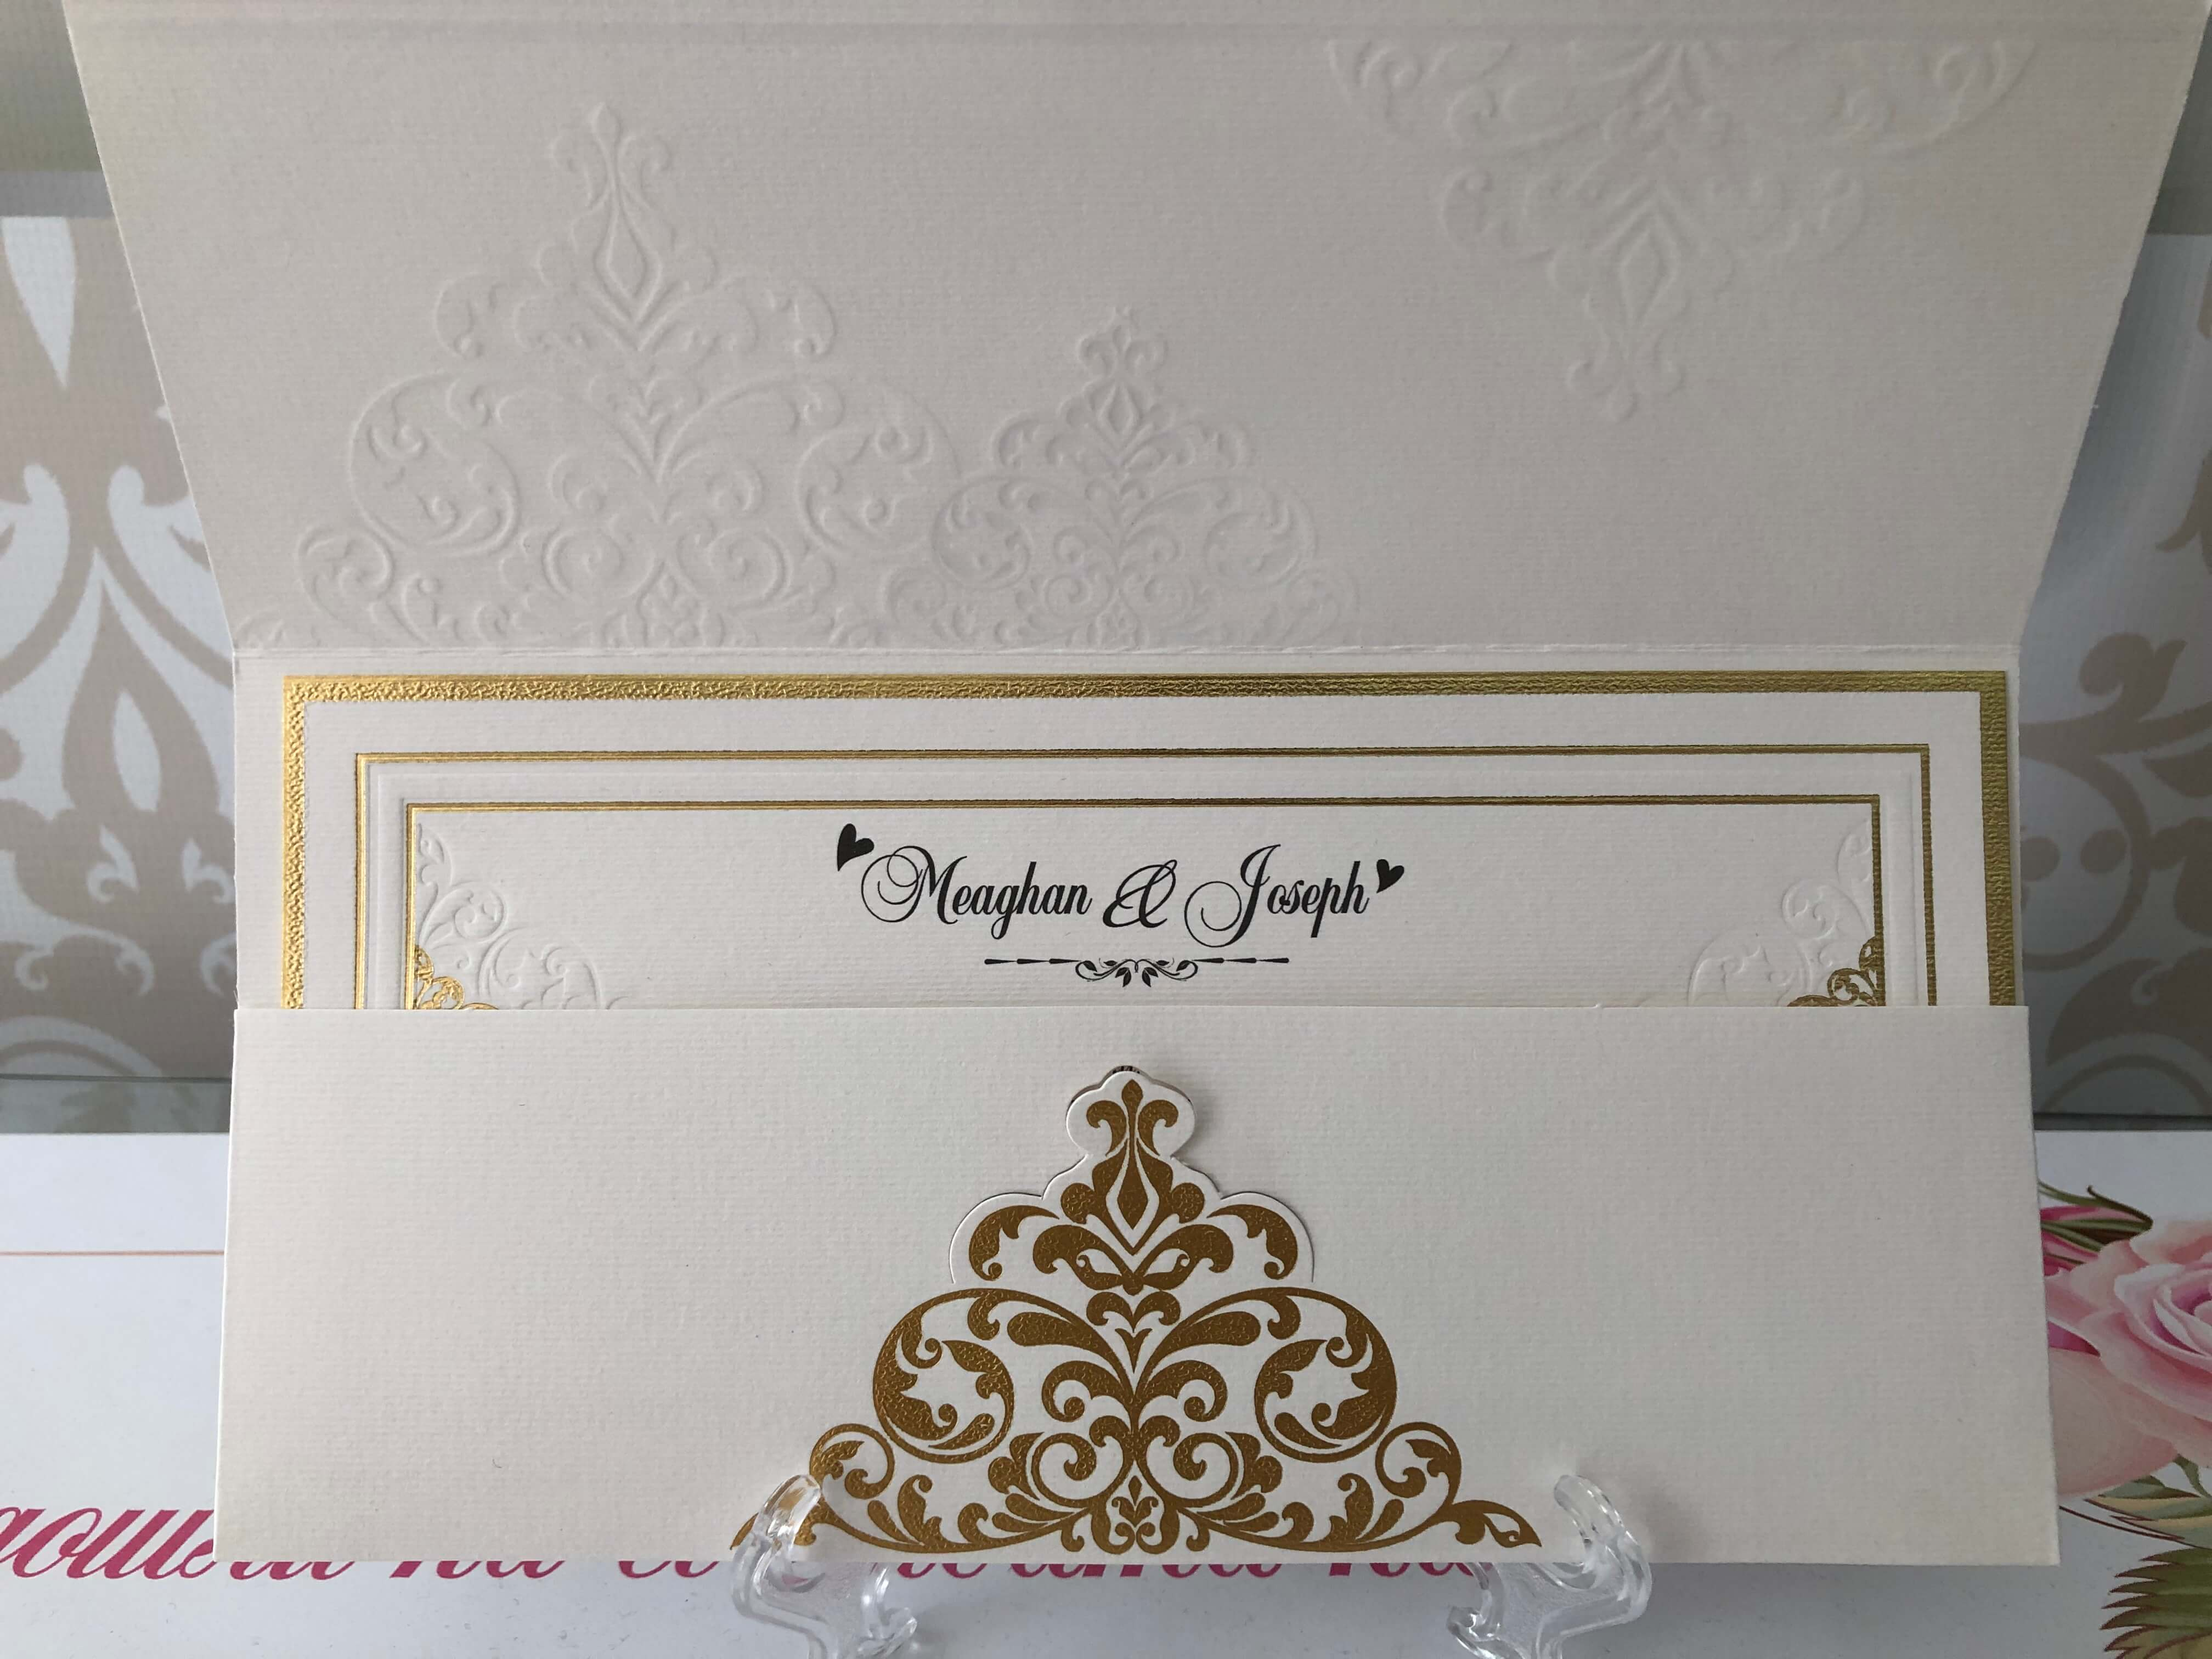 luxury asian wedding cards uk - weddingcardsuk.com